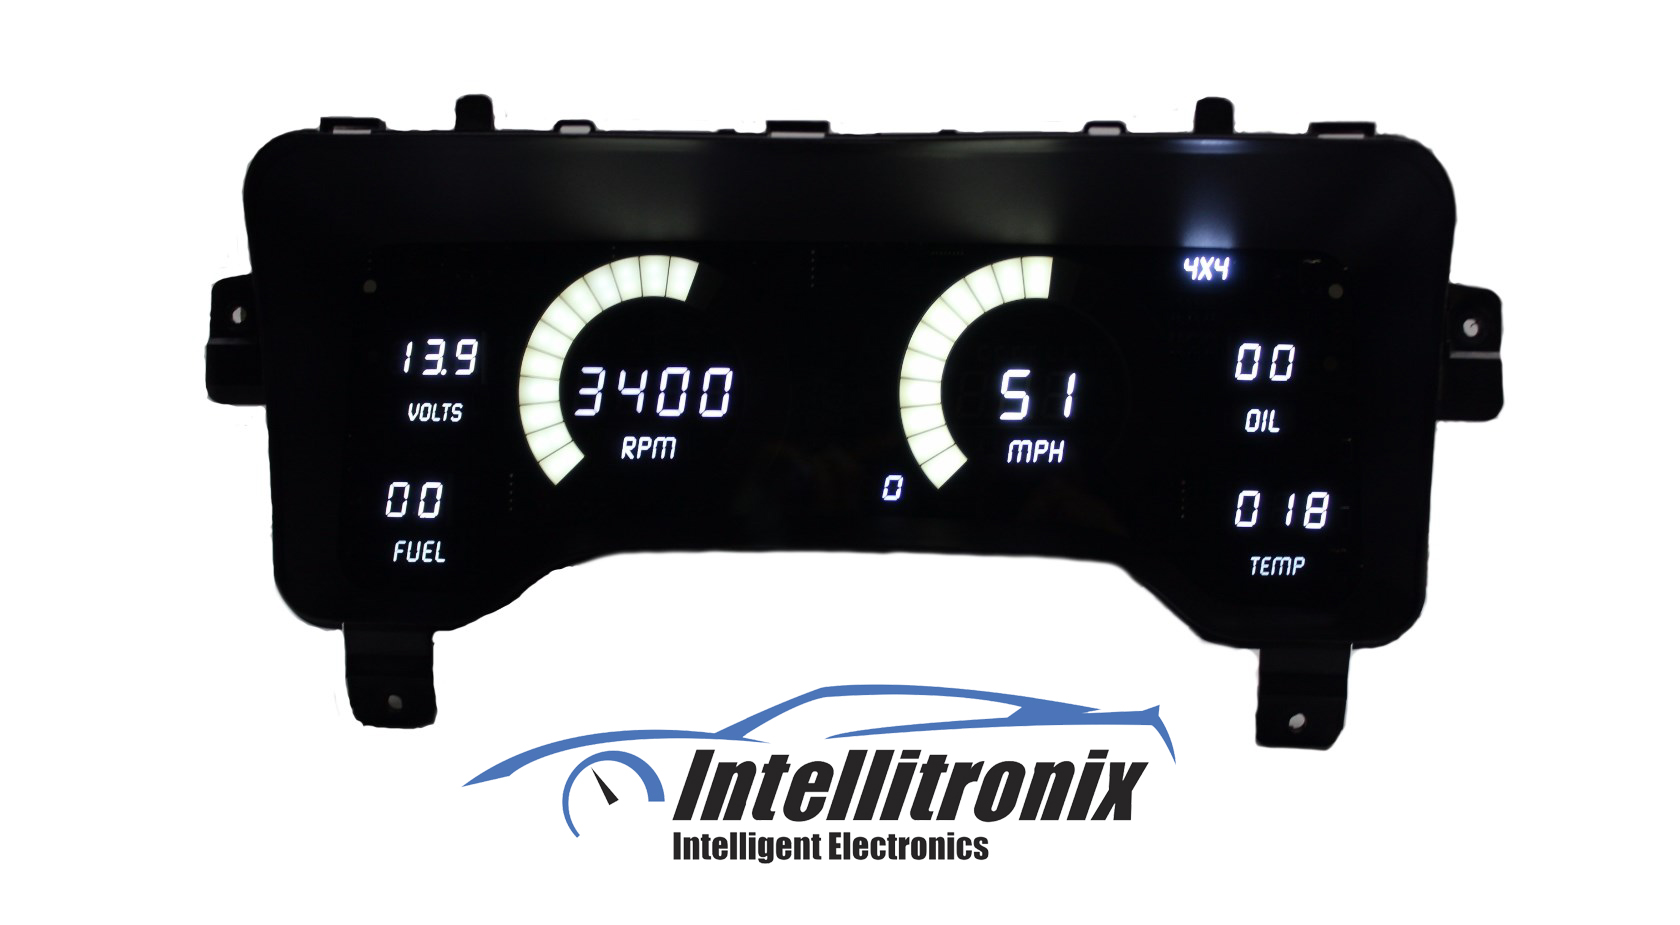 Digital Replacement Dash Panel For Jeep Tj From Intellitronix Wrangler Custom